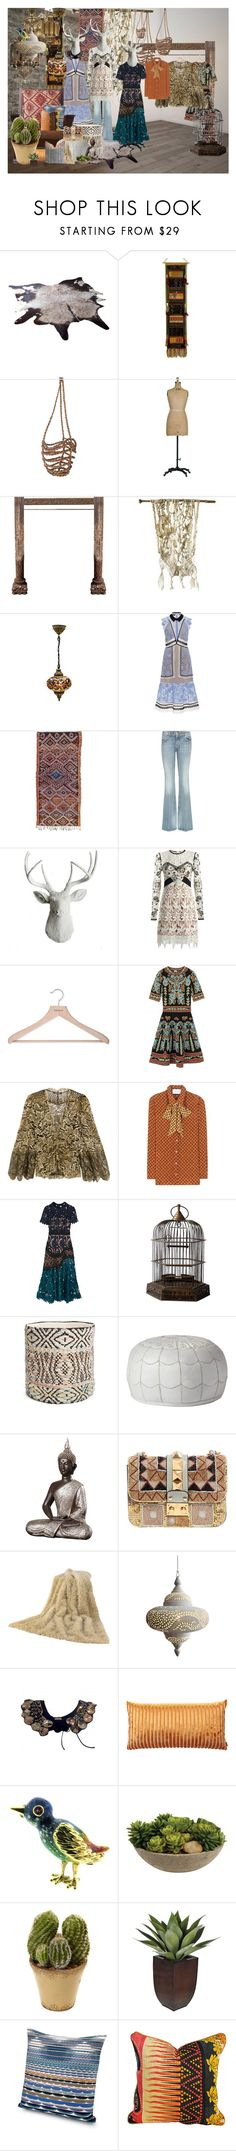 """""""Untitled"""" by cassidylove on Polyvore featuring NOVICA, WALL, self-portrait, Gucci, White Faux Taxidermy, PERIGOT, M Missoni, Roberto Cavalli, Nordstrom and Serena & Lily"""